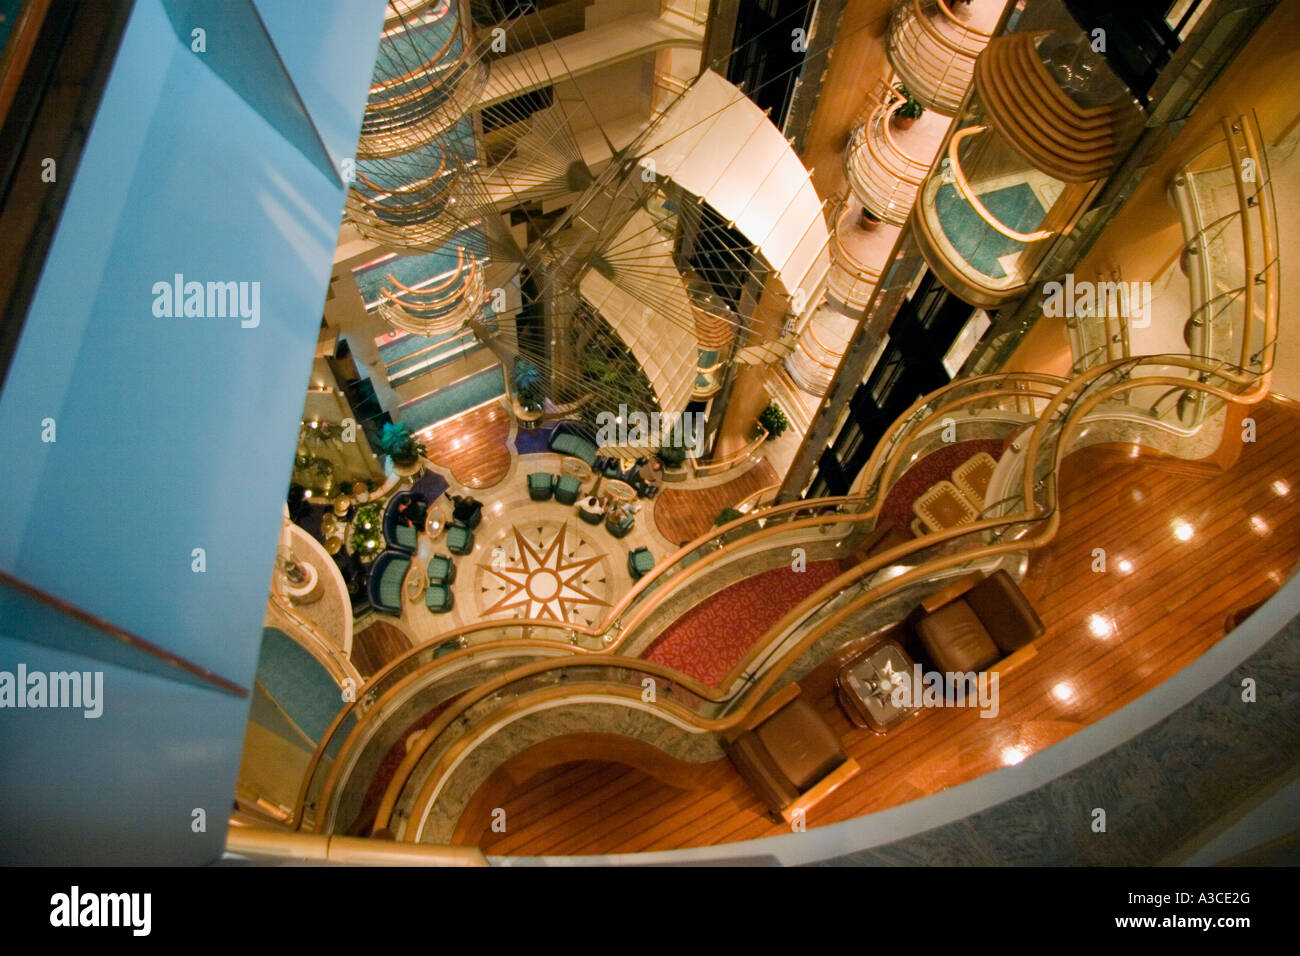 Top high view of interior shot of the Radiance of the Seas cruise ship - Stock Image